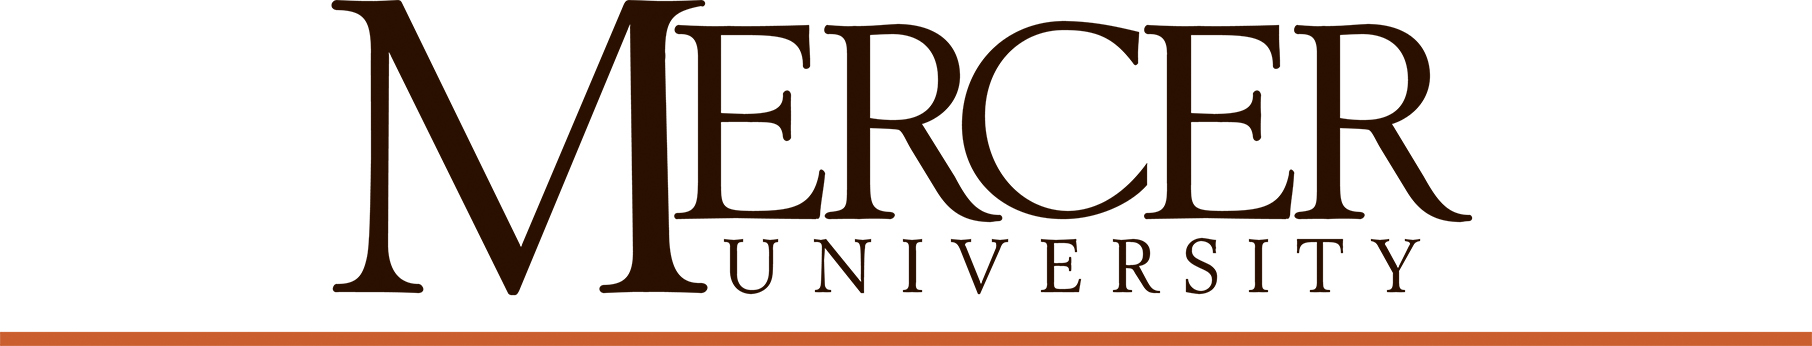 Preparing to Apply to Physician Assistant Programs Students at Mercer  University who are interested in preparing ...